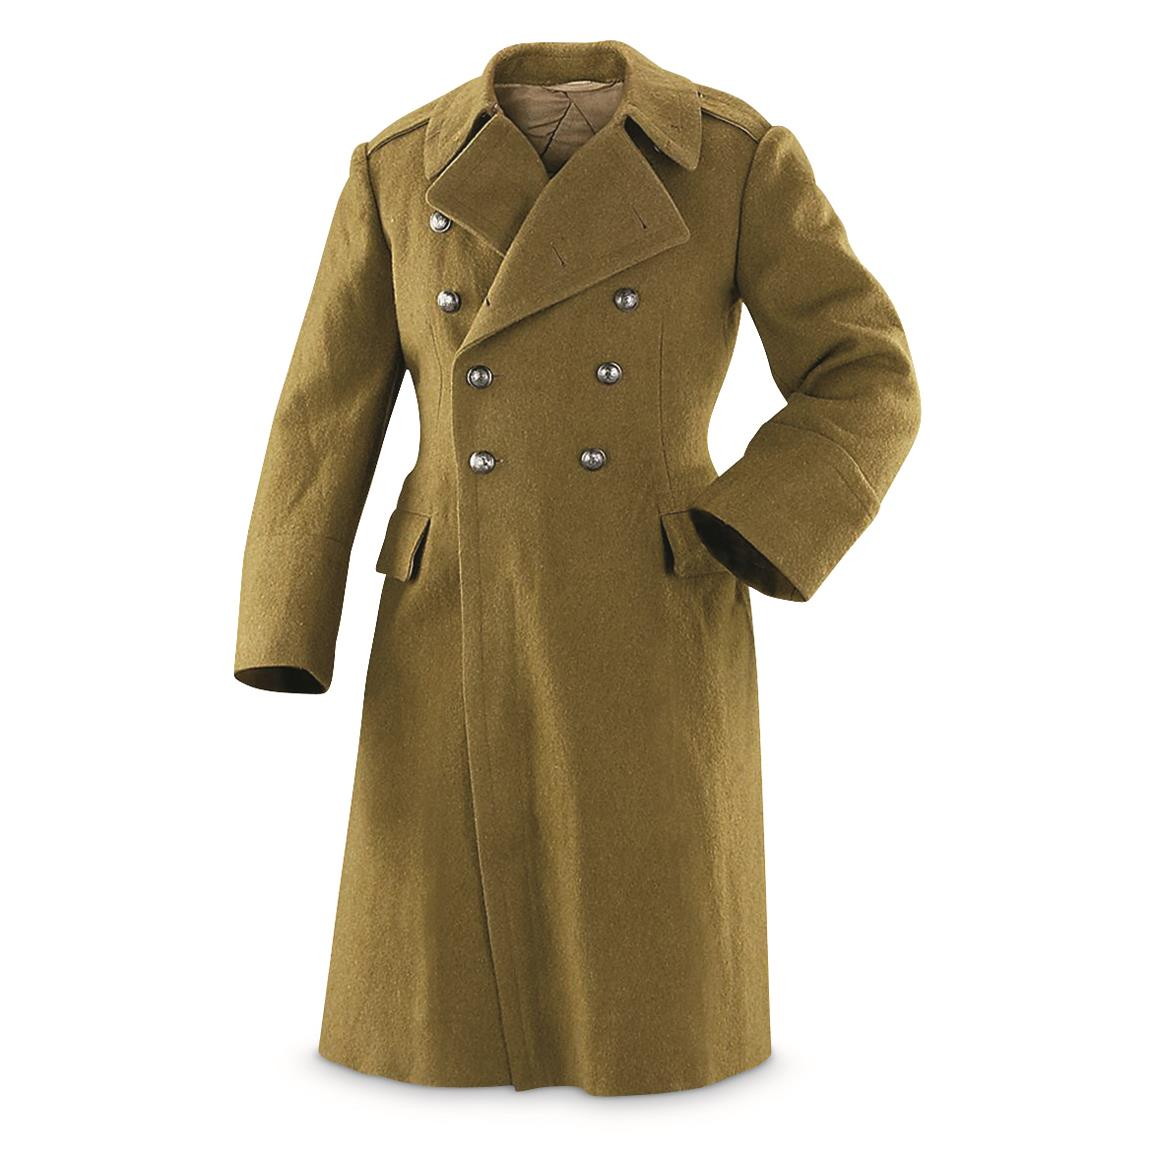 Romanian Military Surplus Wool Trench Coat, Used